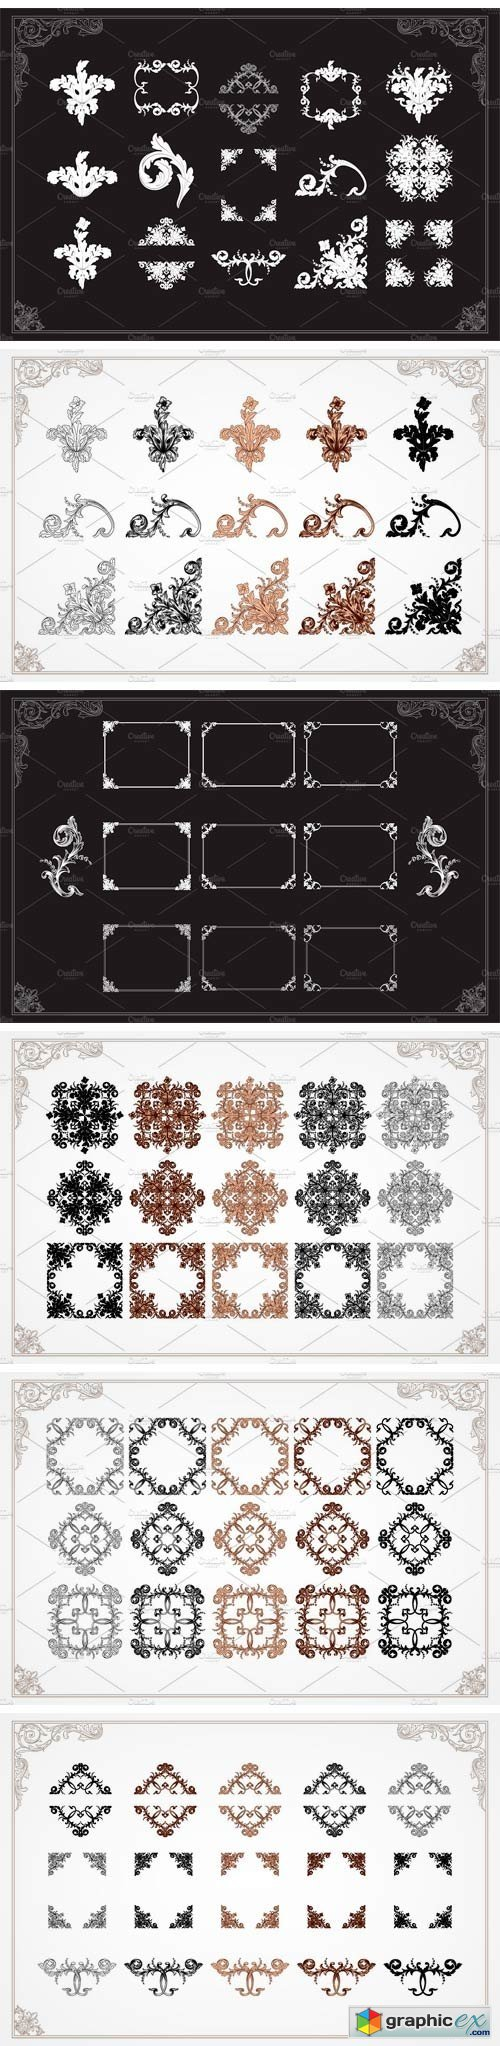 Ornament Elements for Decorate